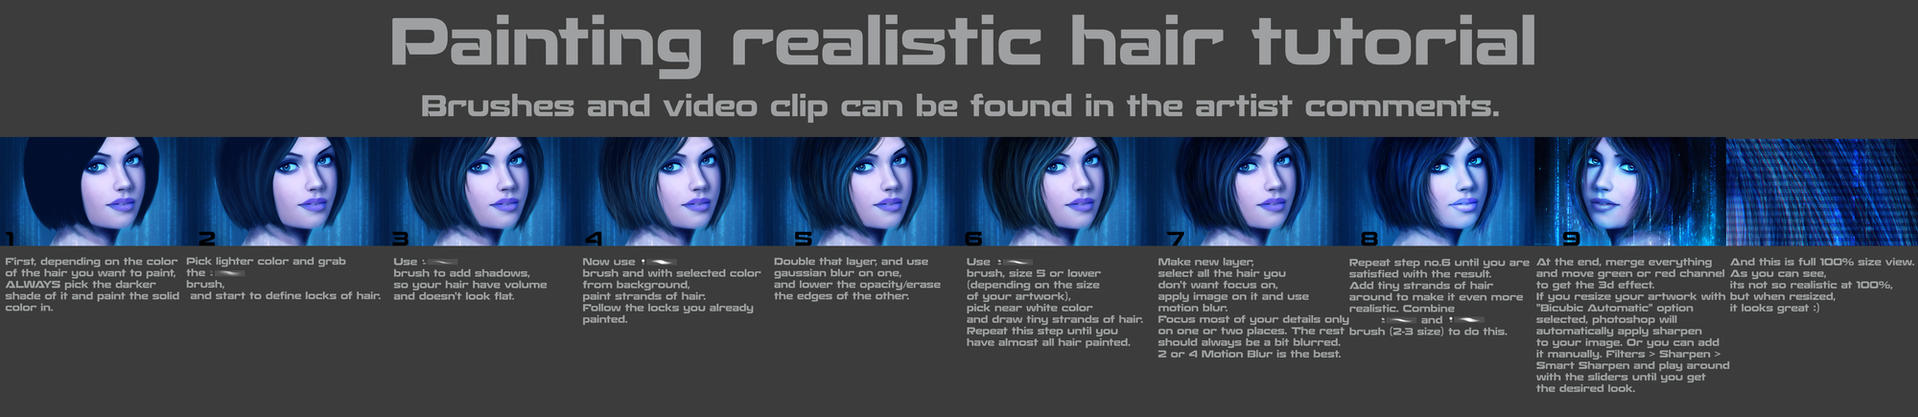 Painting realistic hair tutorial by MagicnaAnavi